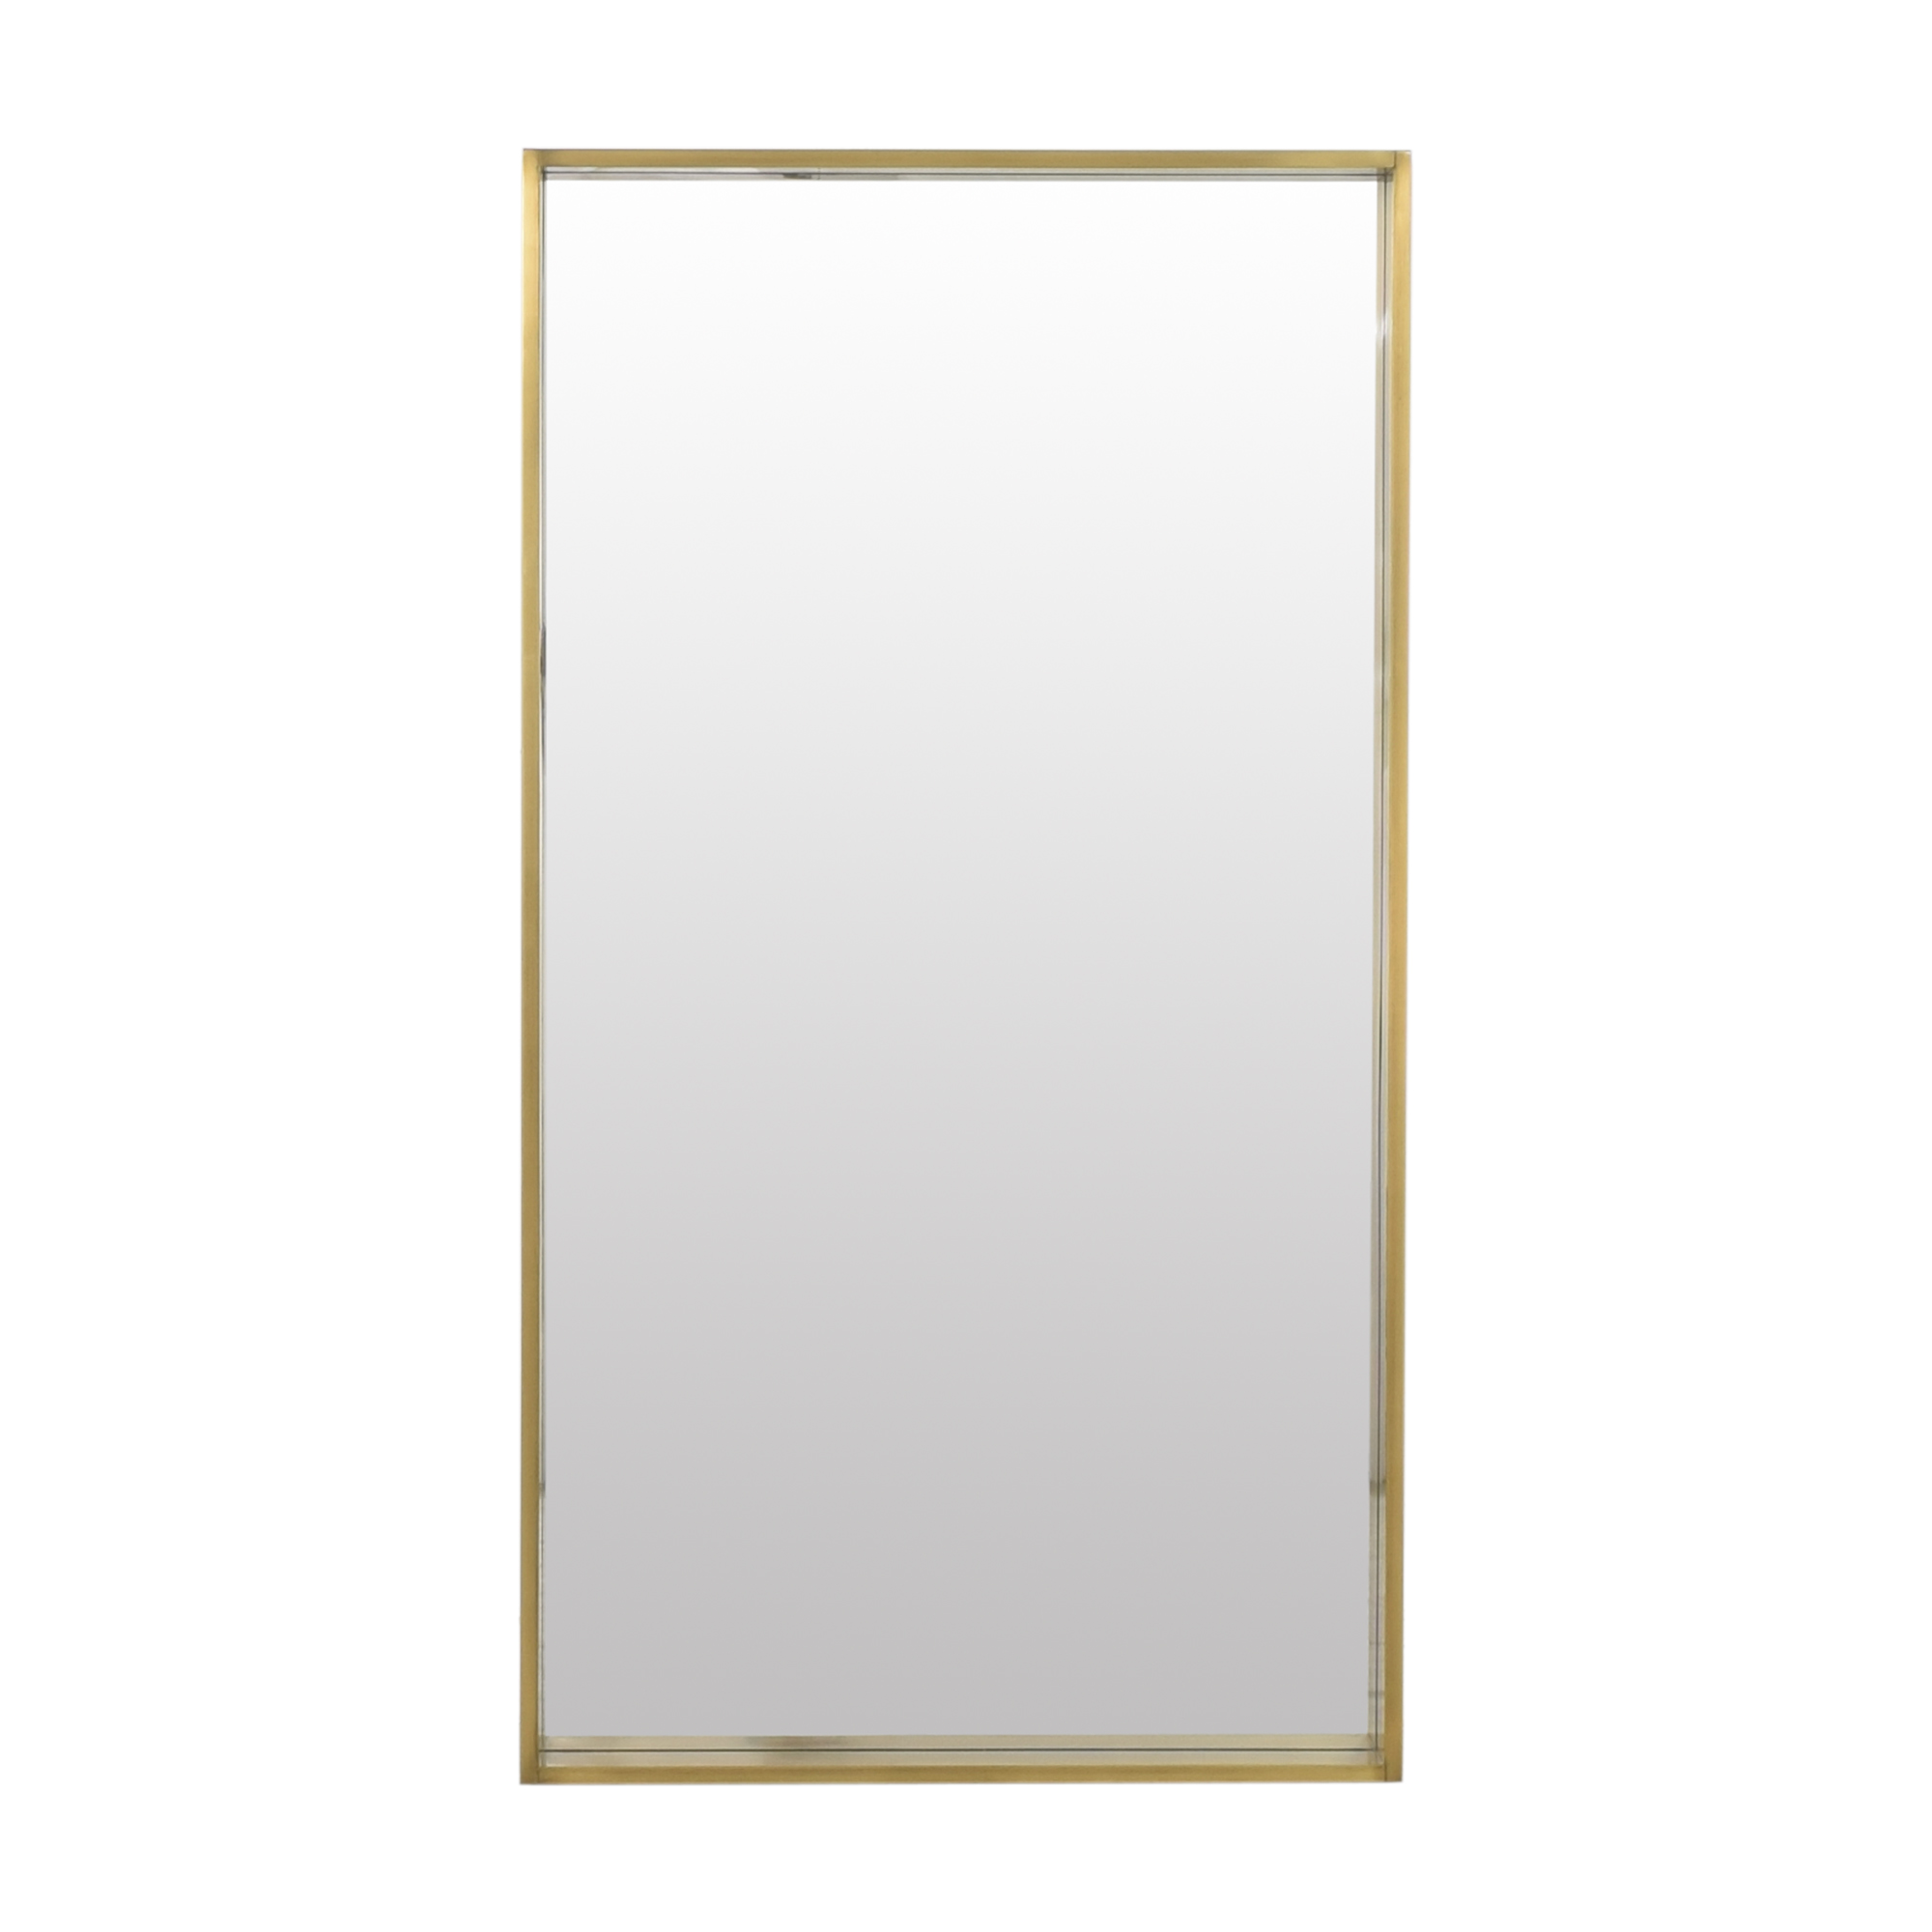 Restoration Hardware Restoration Hardware Dovetail Narrow Frame Mirror gold